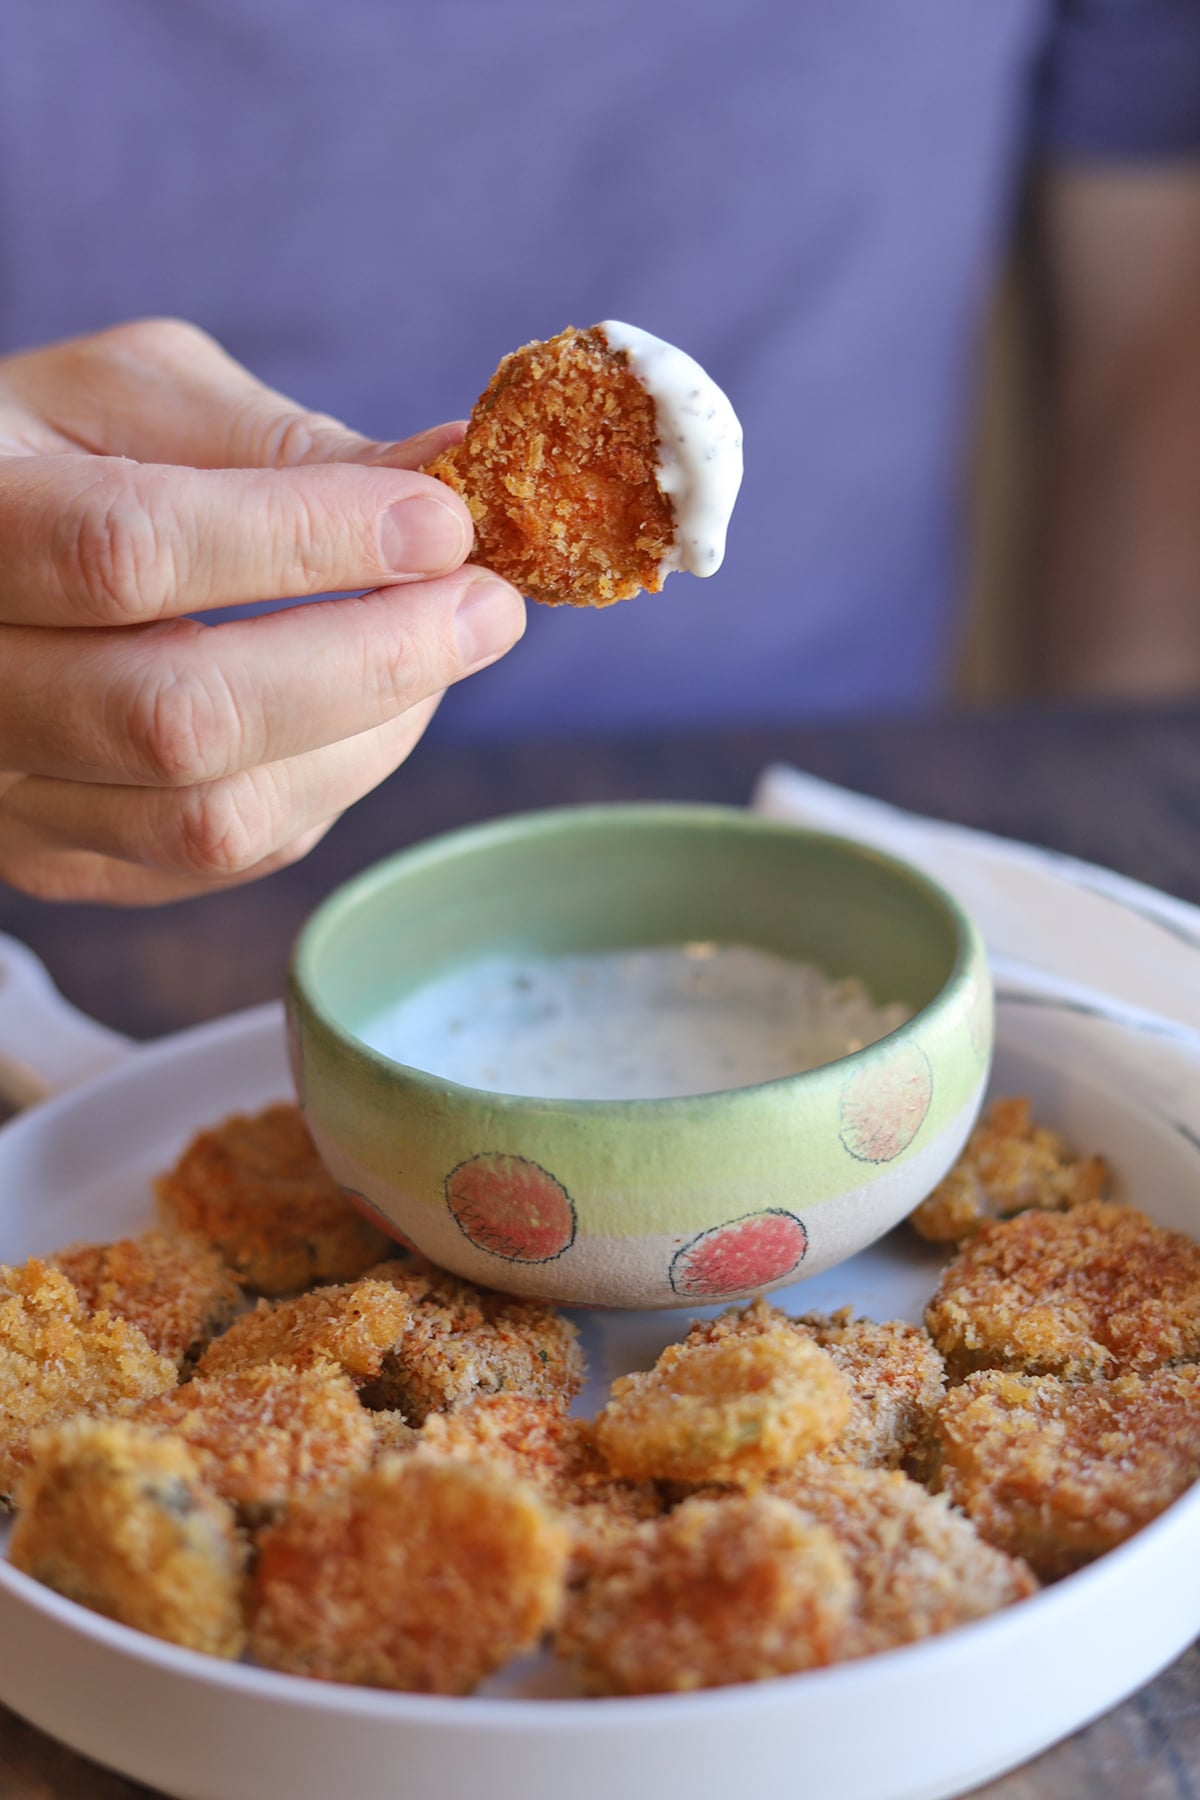 Fried pickle chip being dipped into ranch sauce.